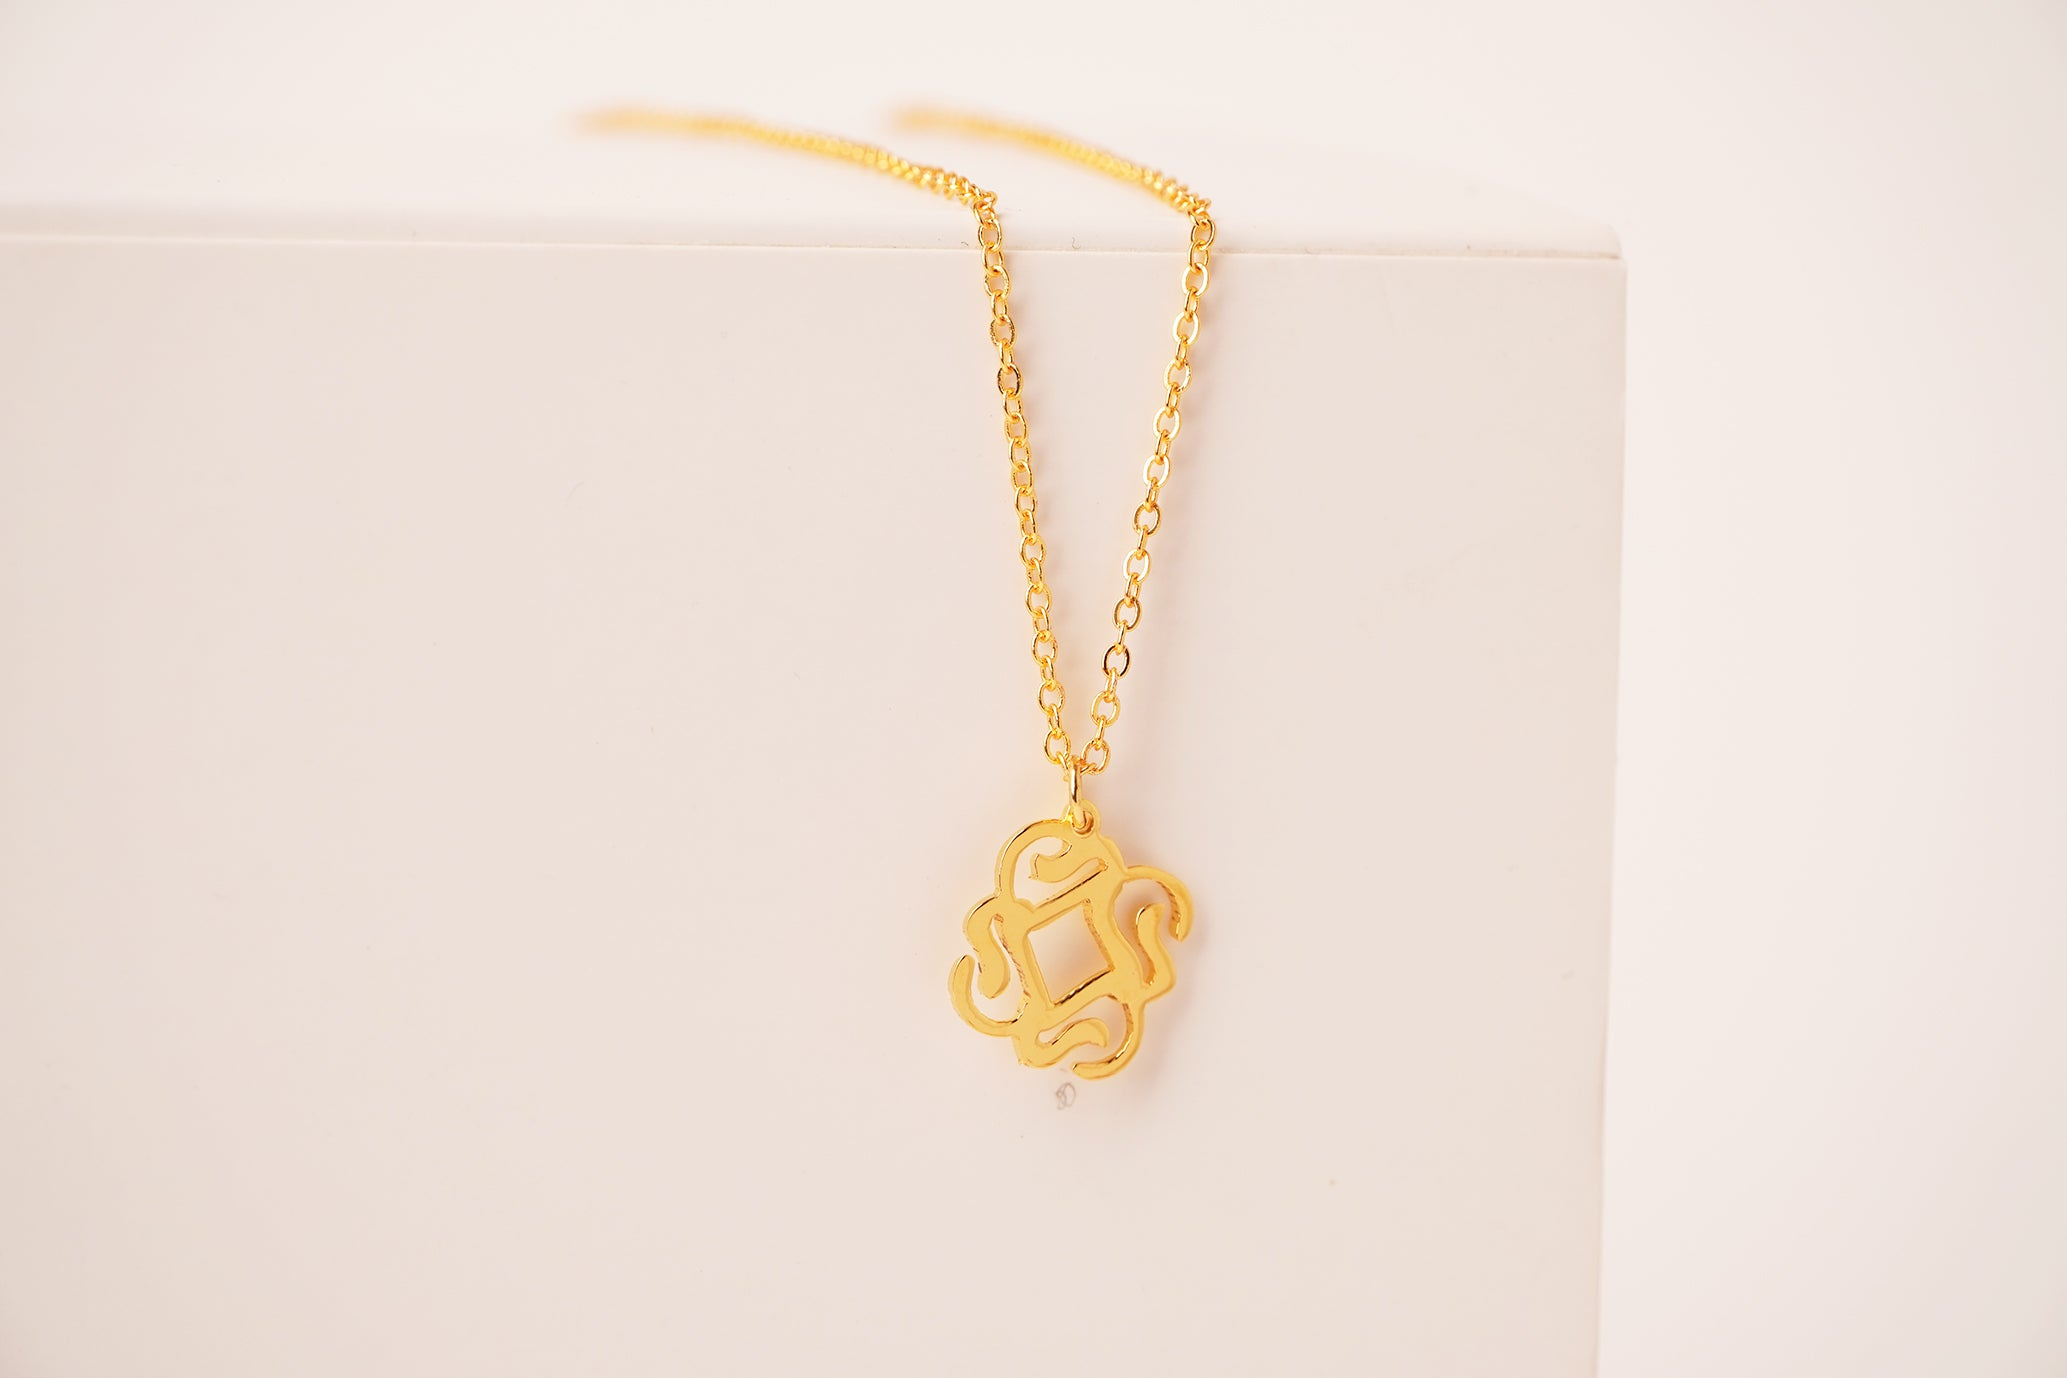 WA Arabic calligraphy  necklace